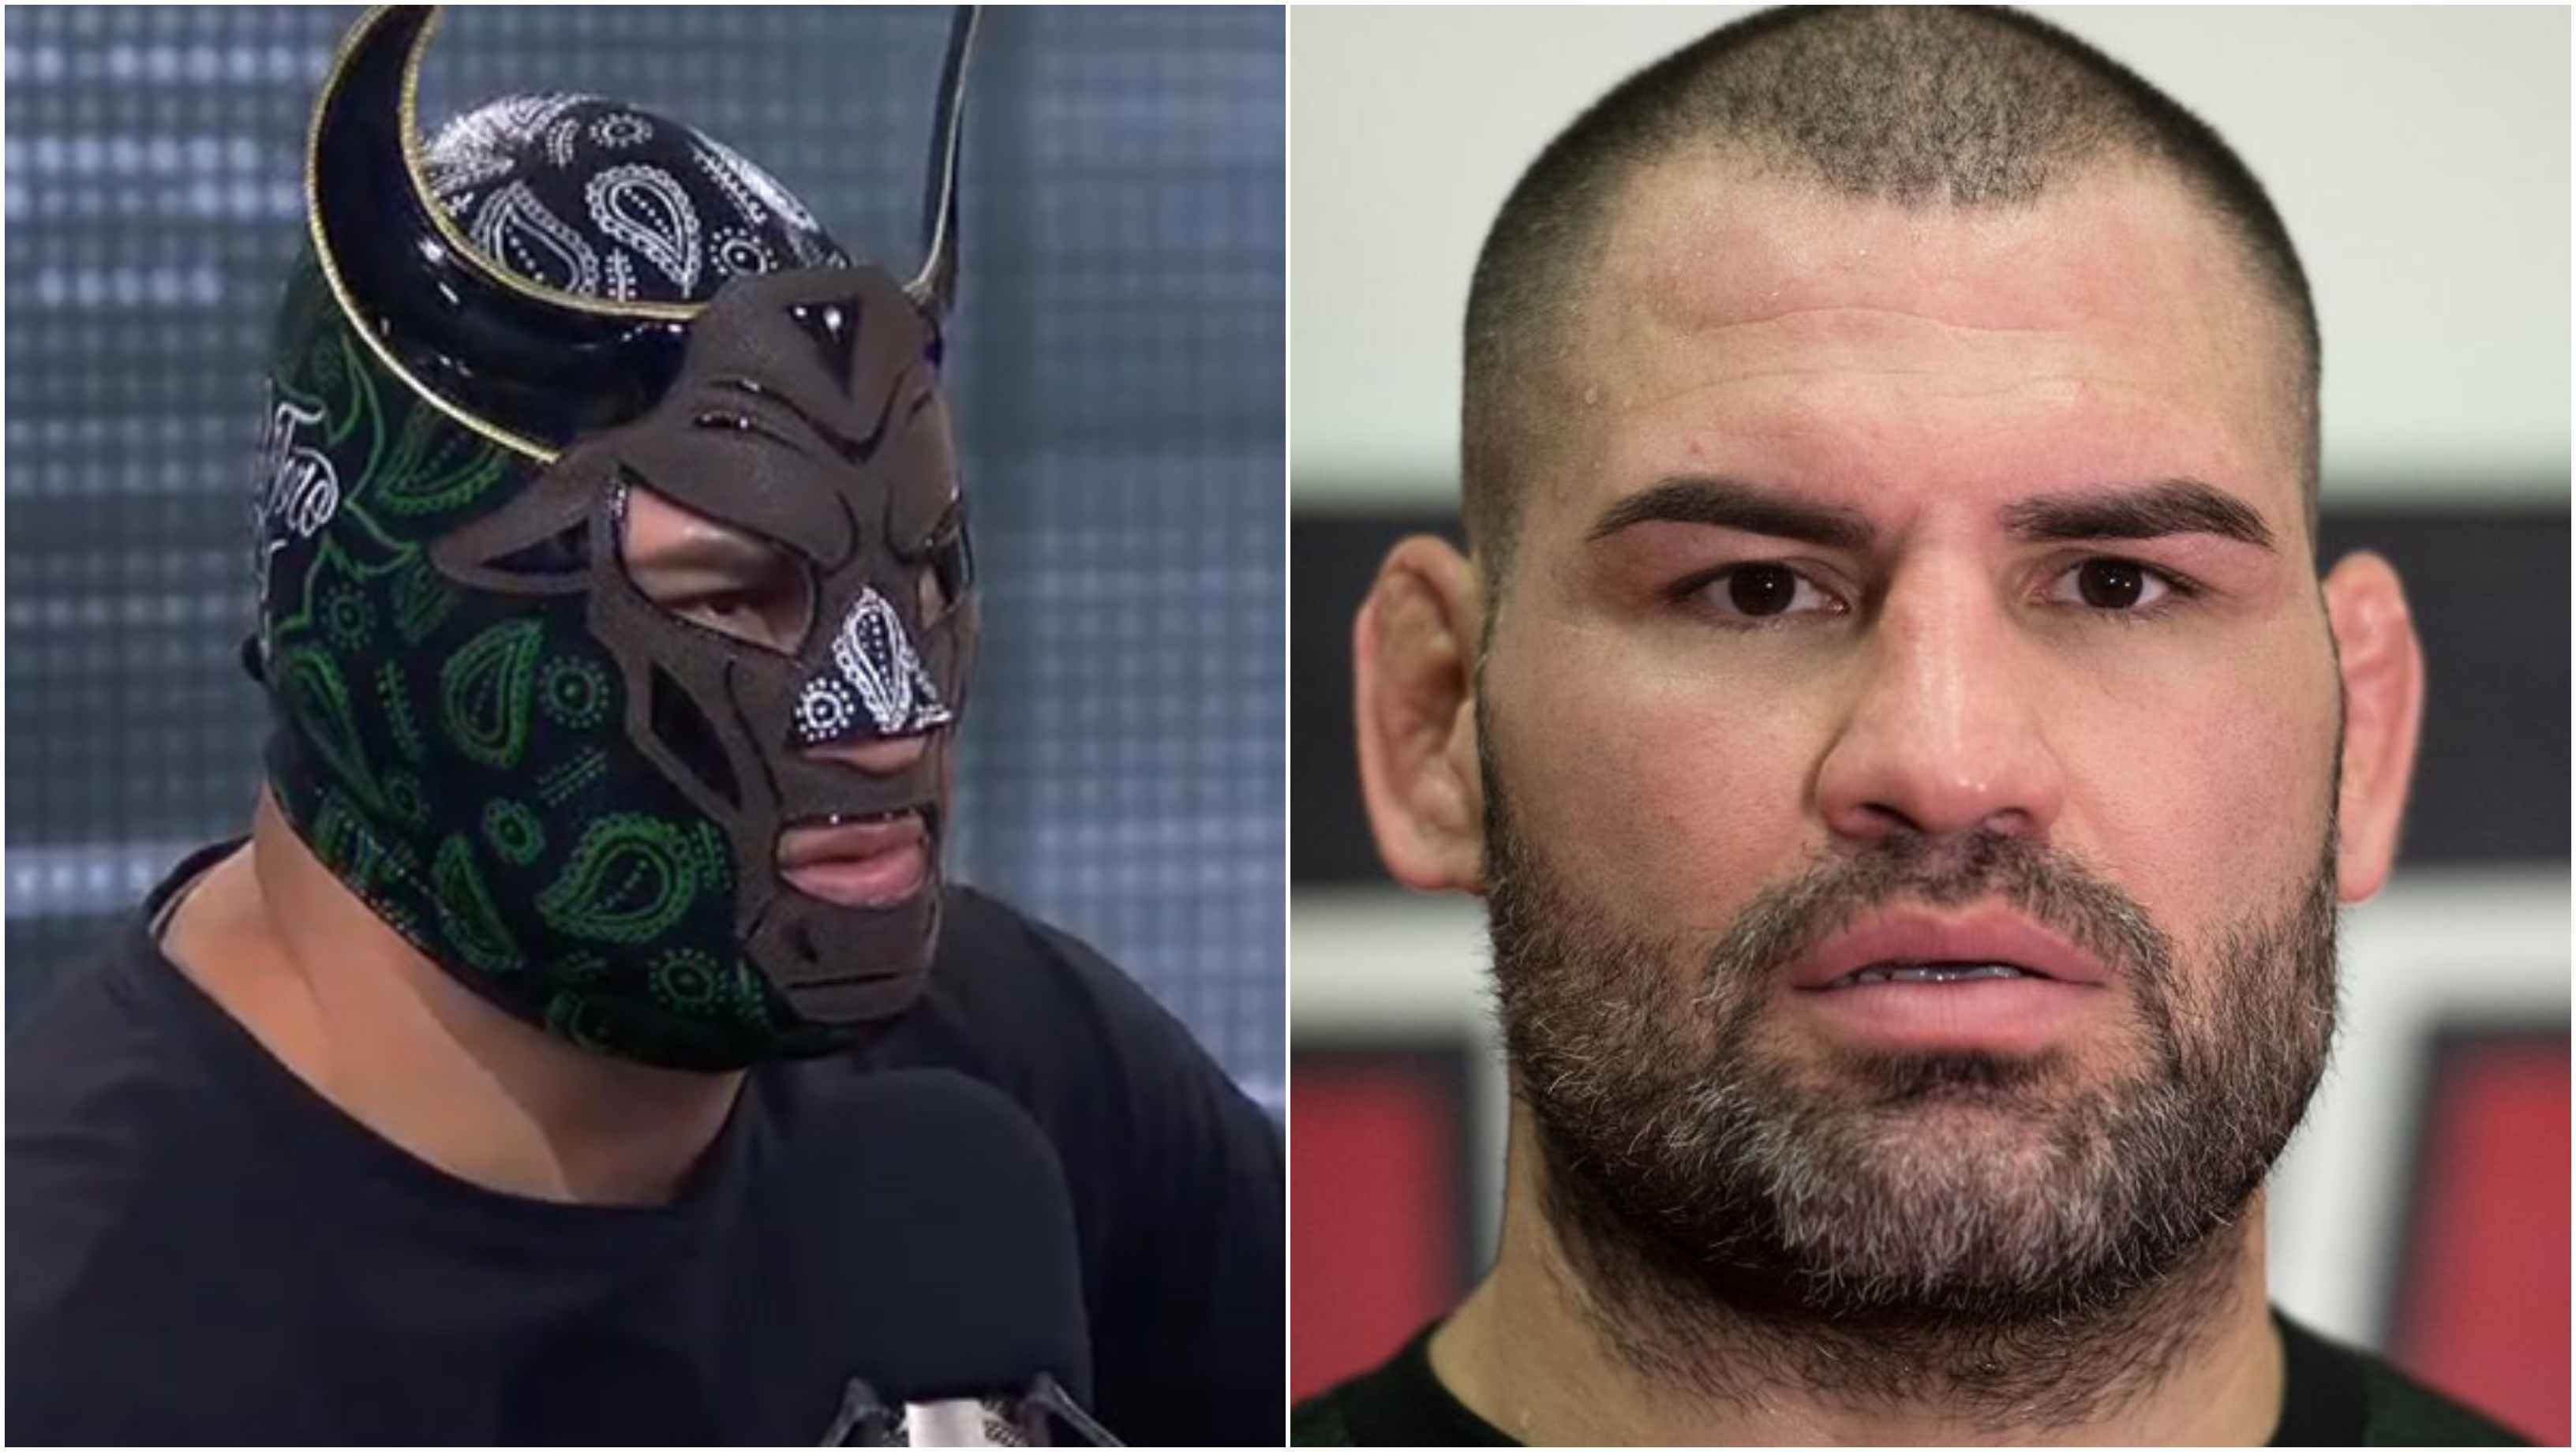 Former UFC Heavyweight Champion Cain Velasquez in touch with WWE to make pro wrestling switch - Cain